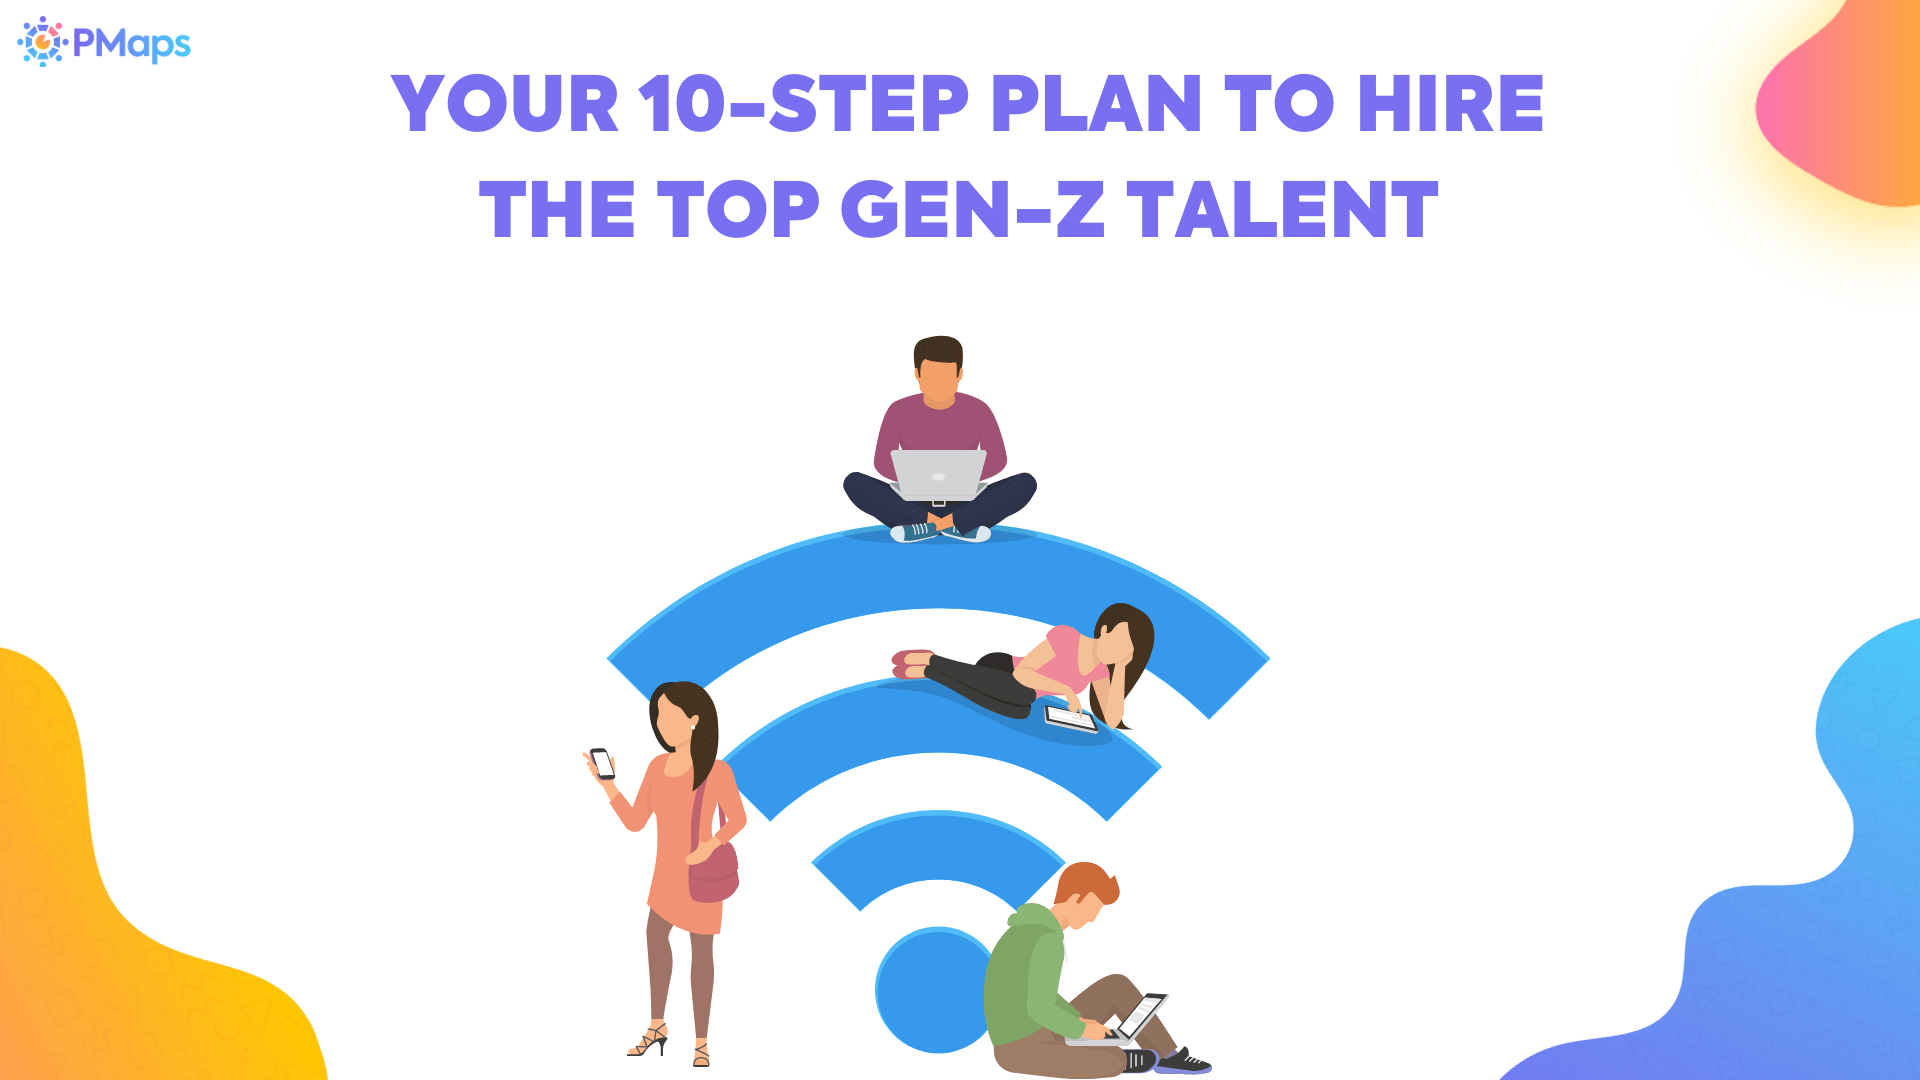 Your 10-Step Plan To Hire The Top Gen-Z Talent